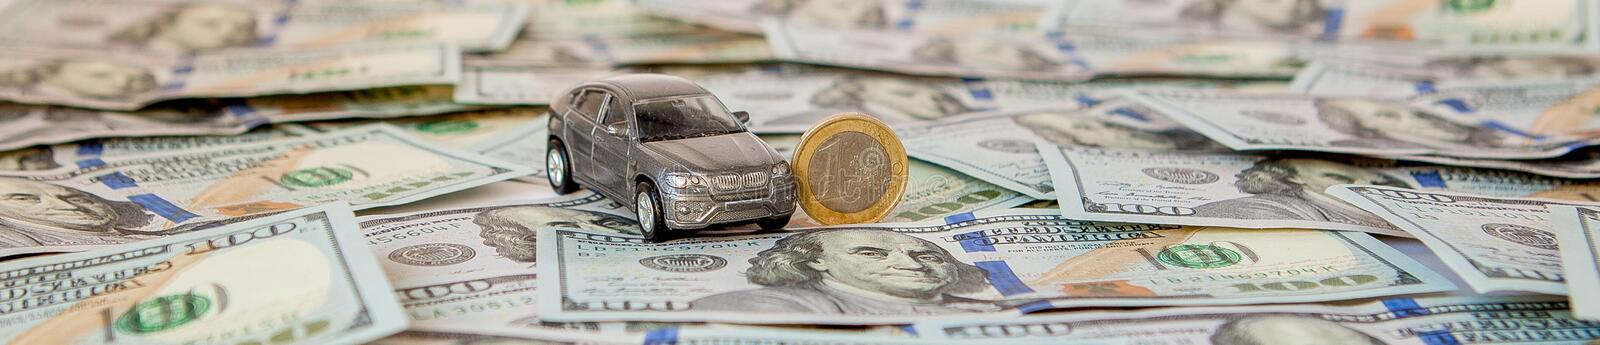 Car costs concept. Selective focus image with shallow depth of field stock image